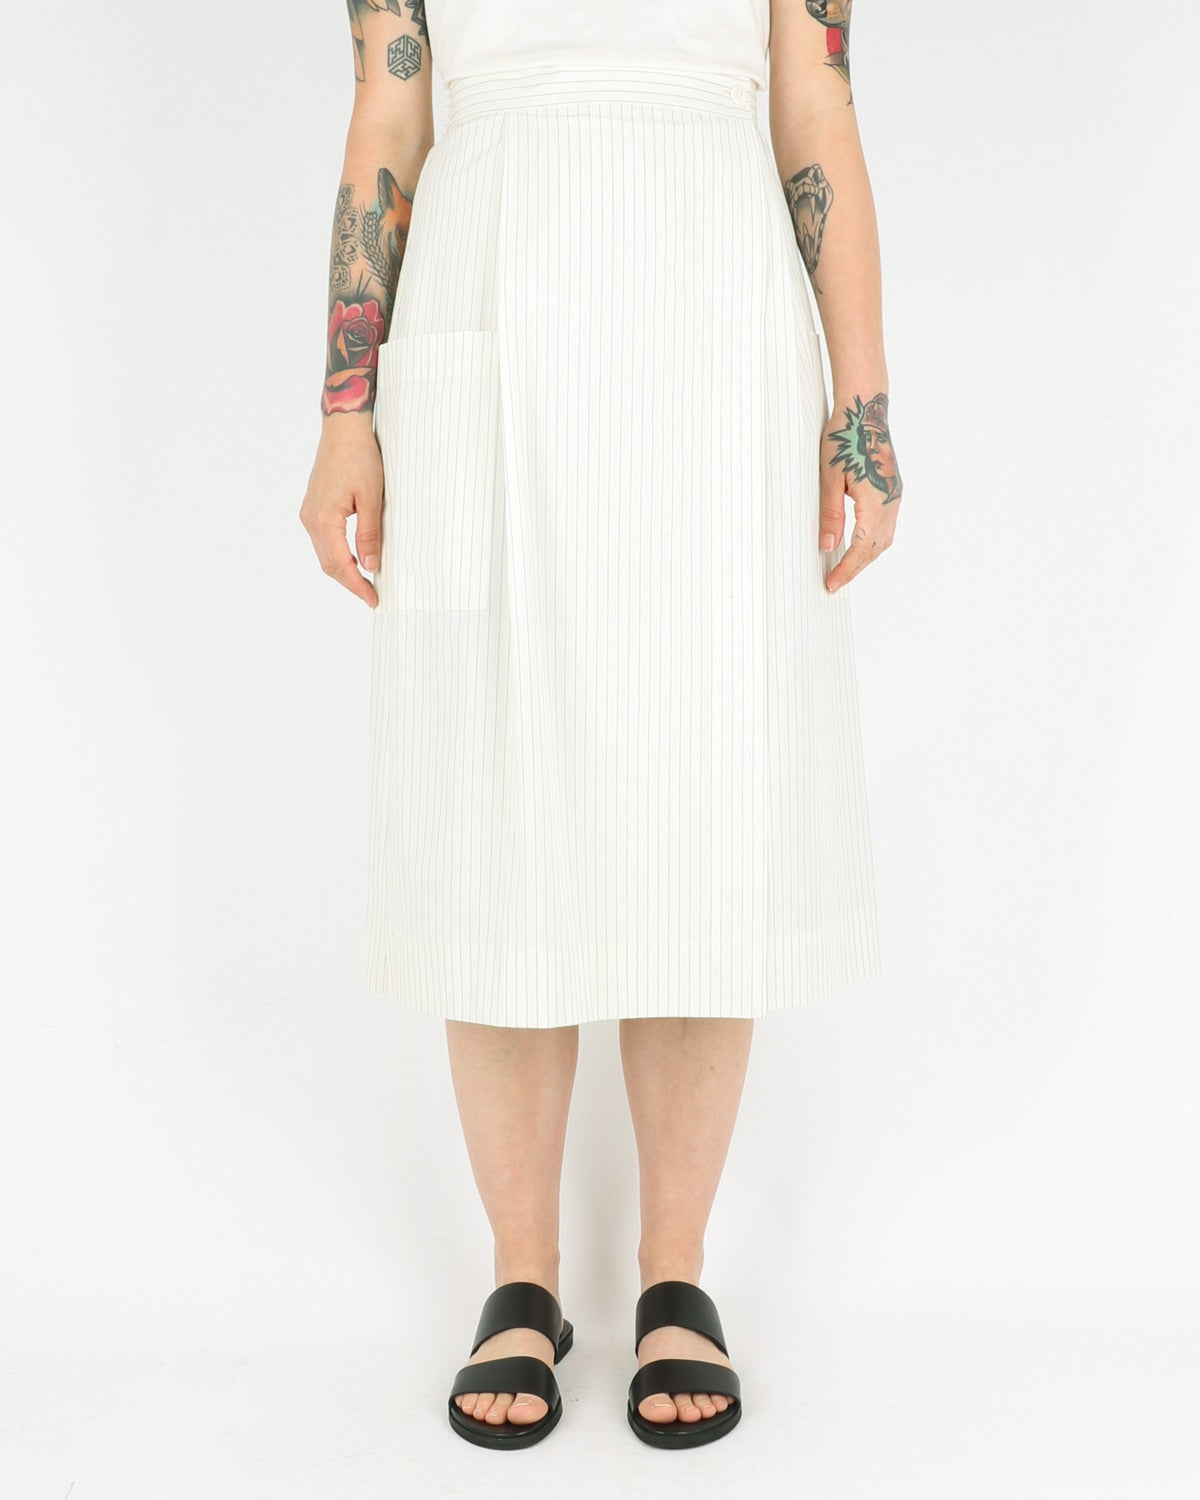 norse projects women_julietta light cotton skirt_ecru_view_1_3